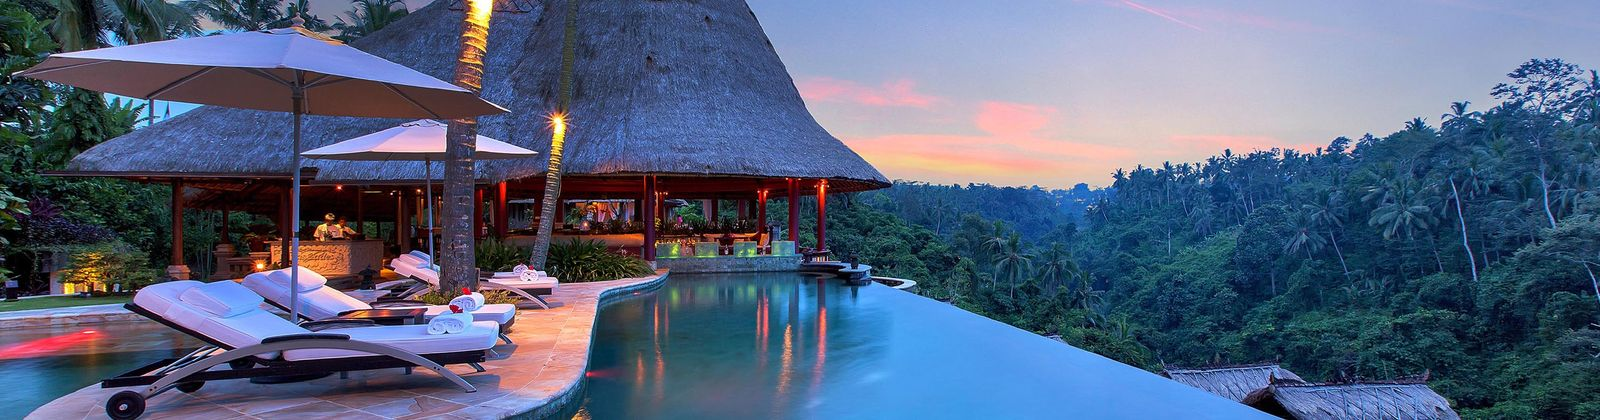 The best hotels in Bali for every budget